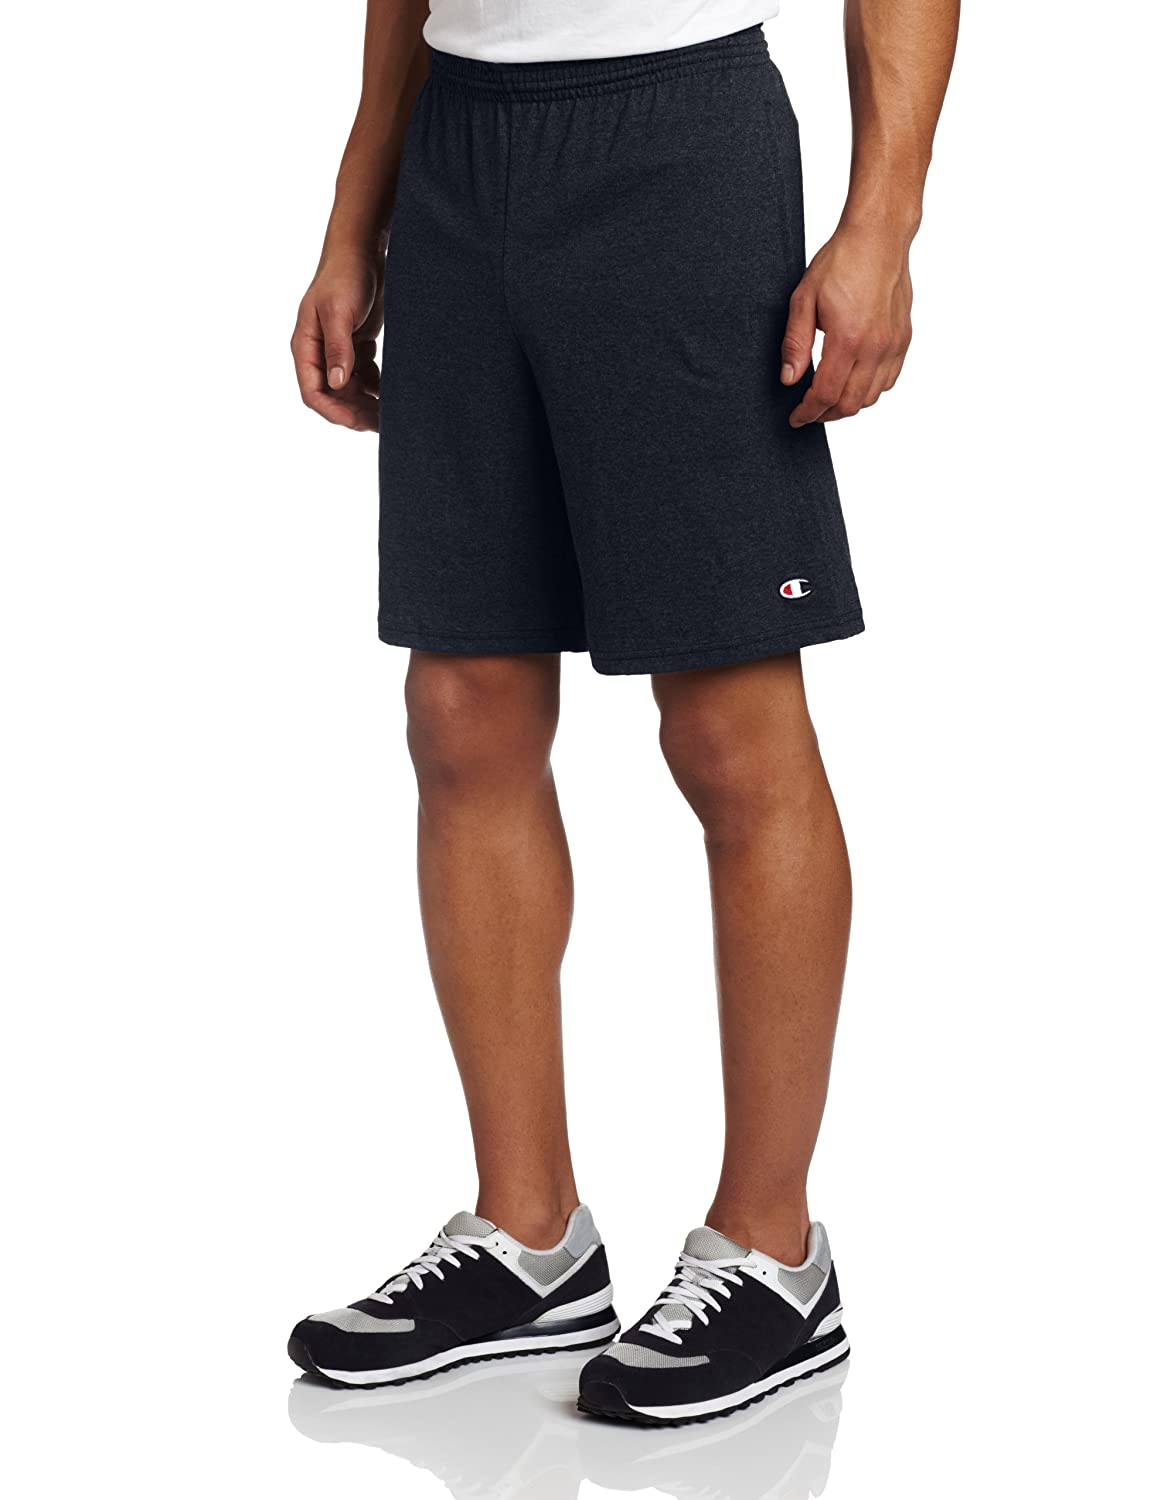 Champion Men's Jersey Short With Pockets газонокосилка бензиновая champion lm5127bs